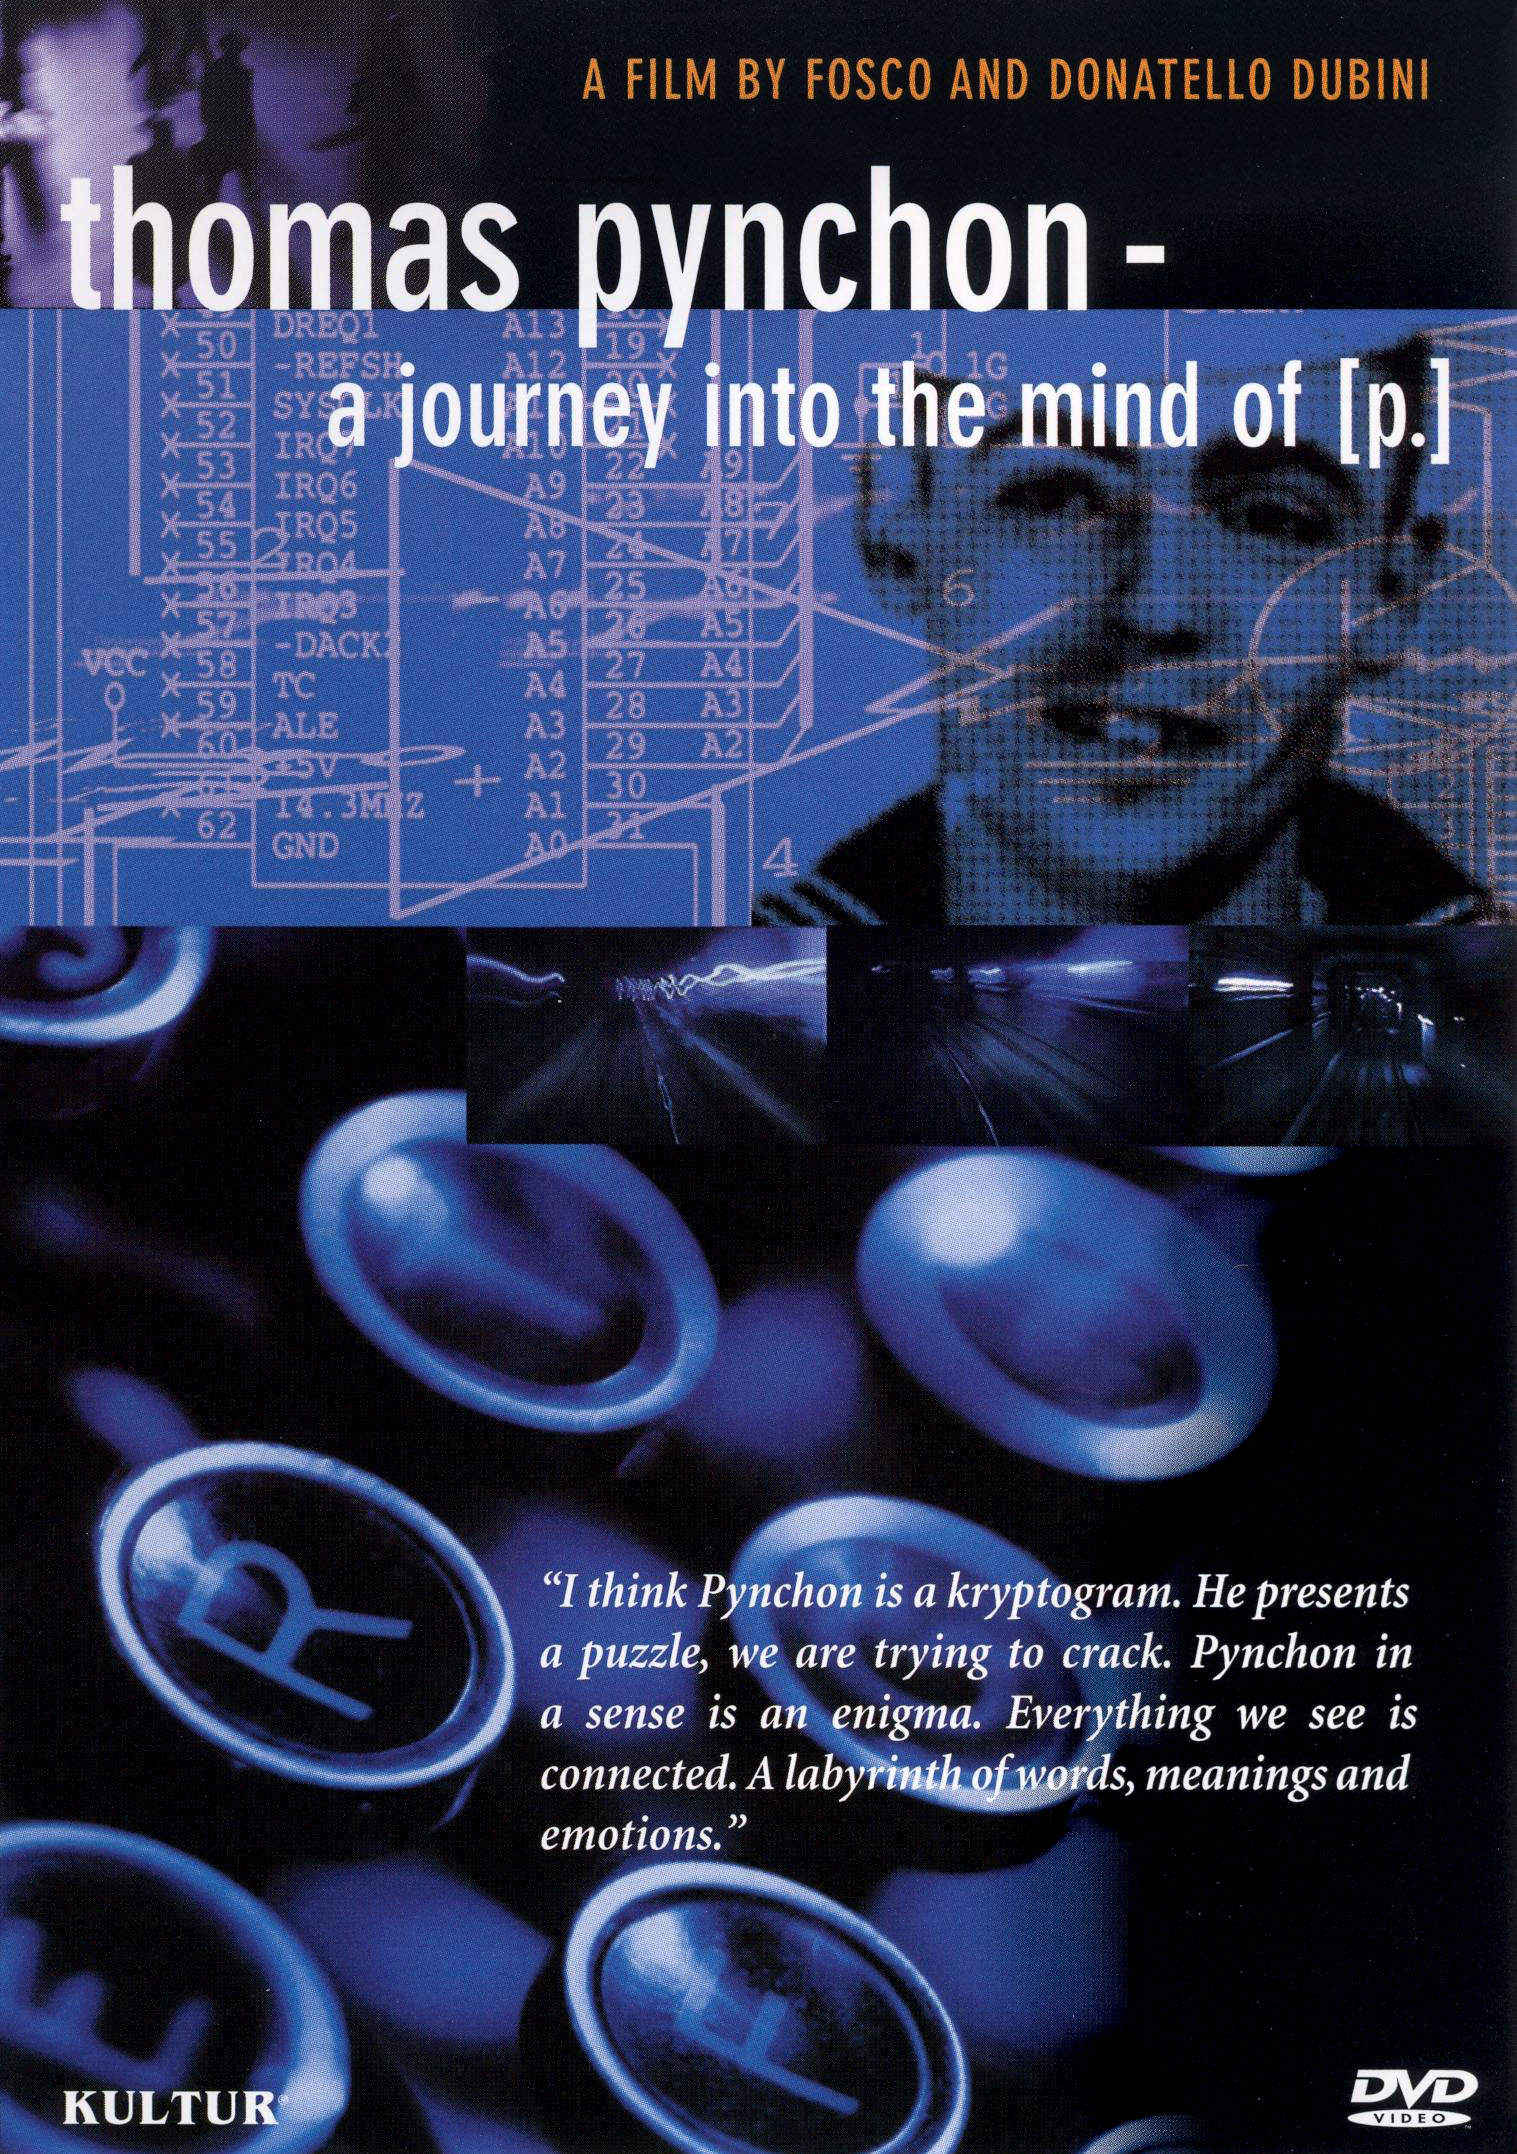 Thomas Pynchon: A Journey Into the Mind of [P.]